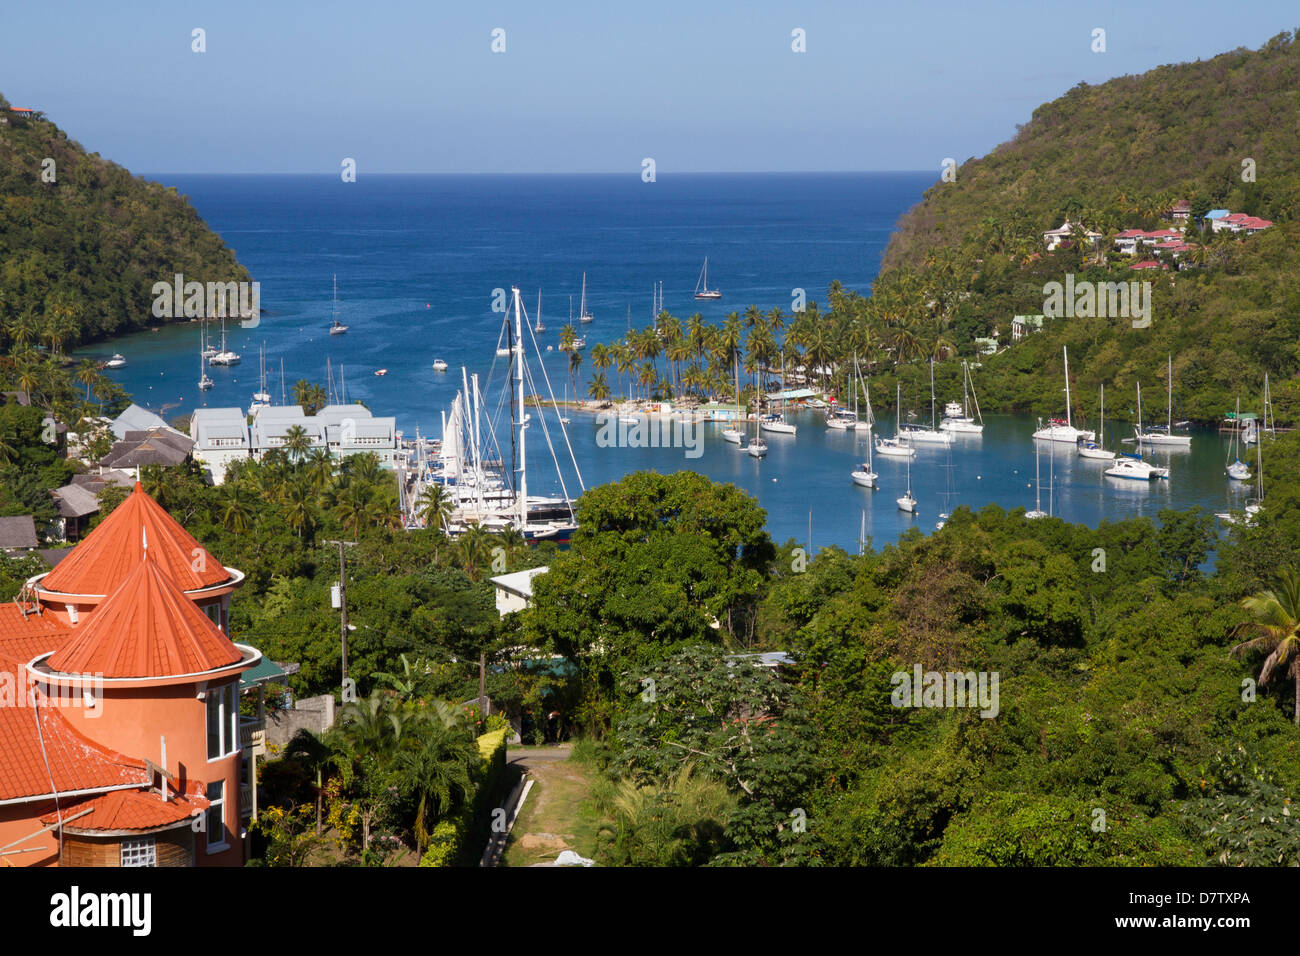 Marigot Bay and yachts, St. Lucia, Windward Islands, West Indies, Caribbean - Stock Image